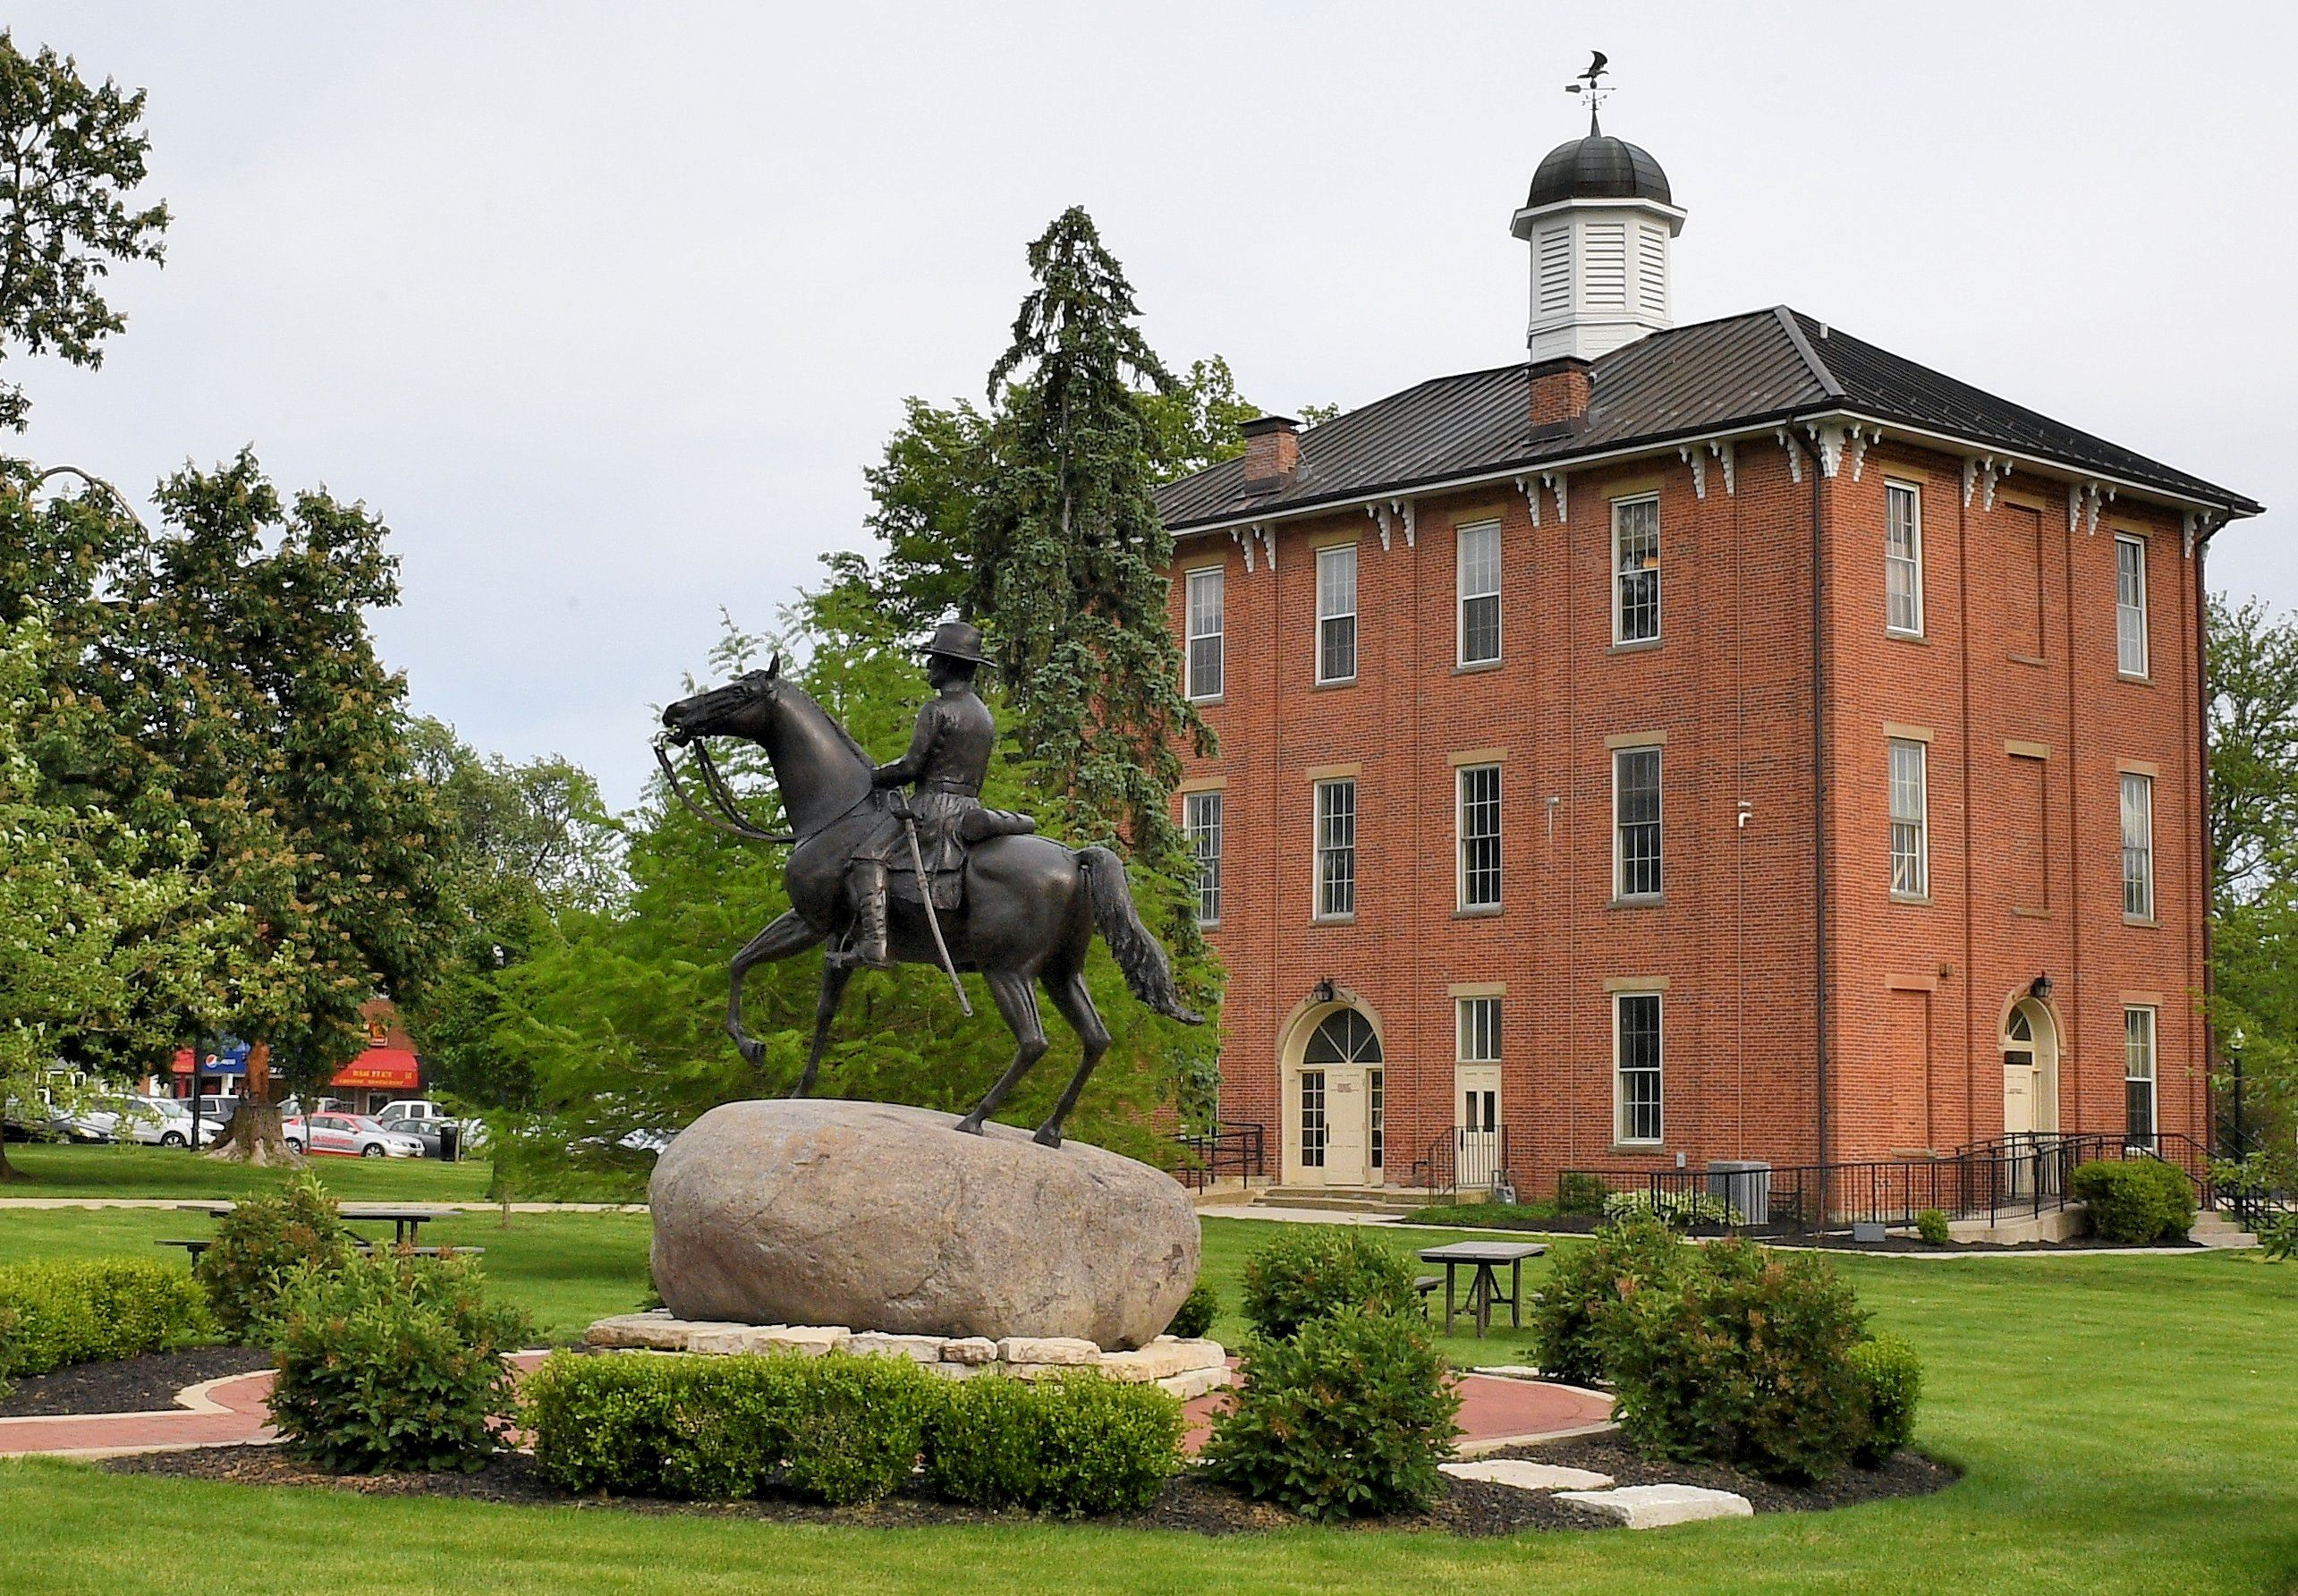 An outside view of town hall with a statue of a man on a horse and grounds